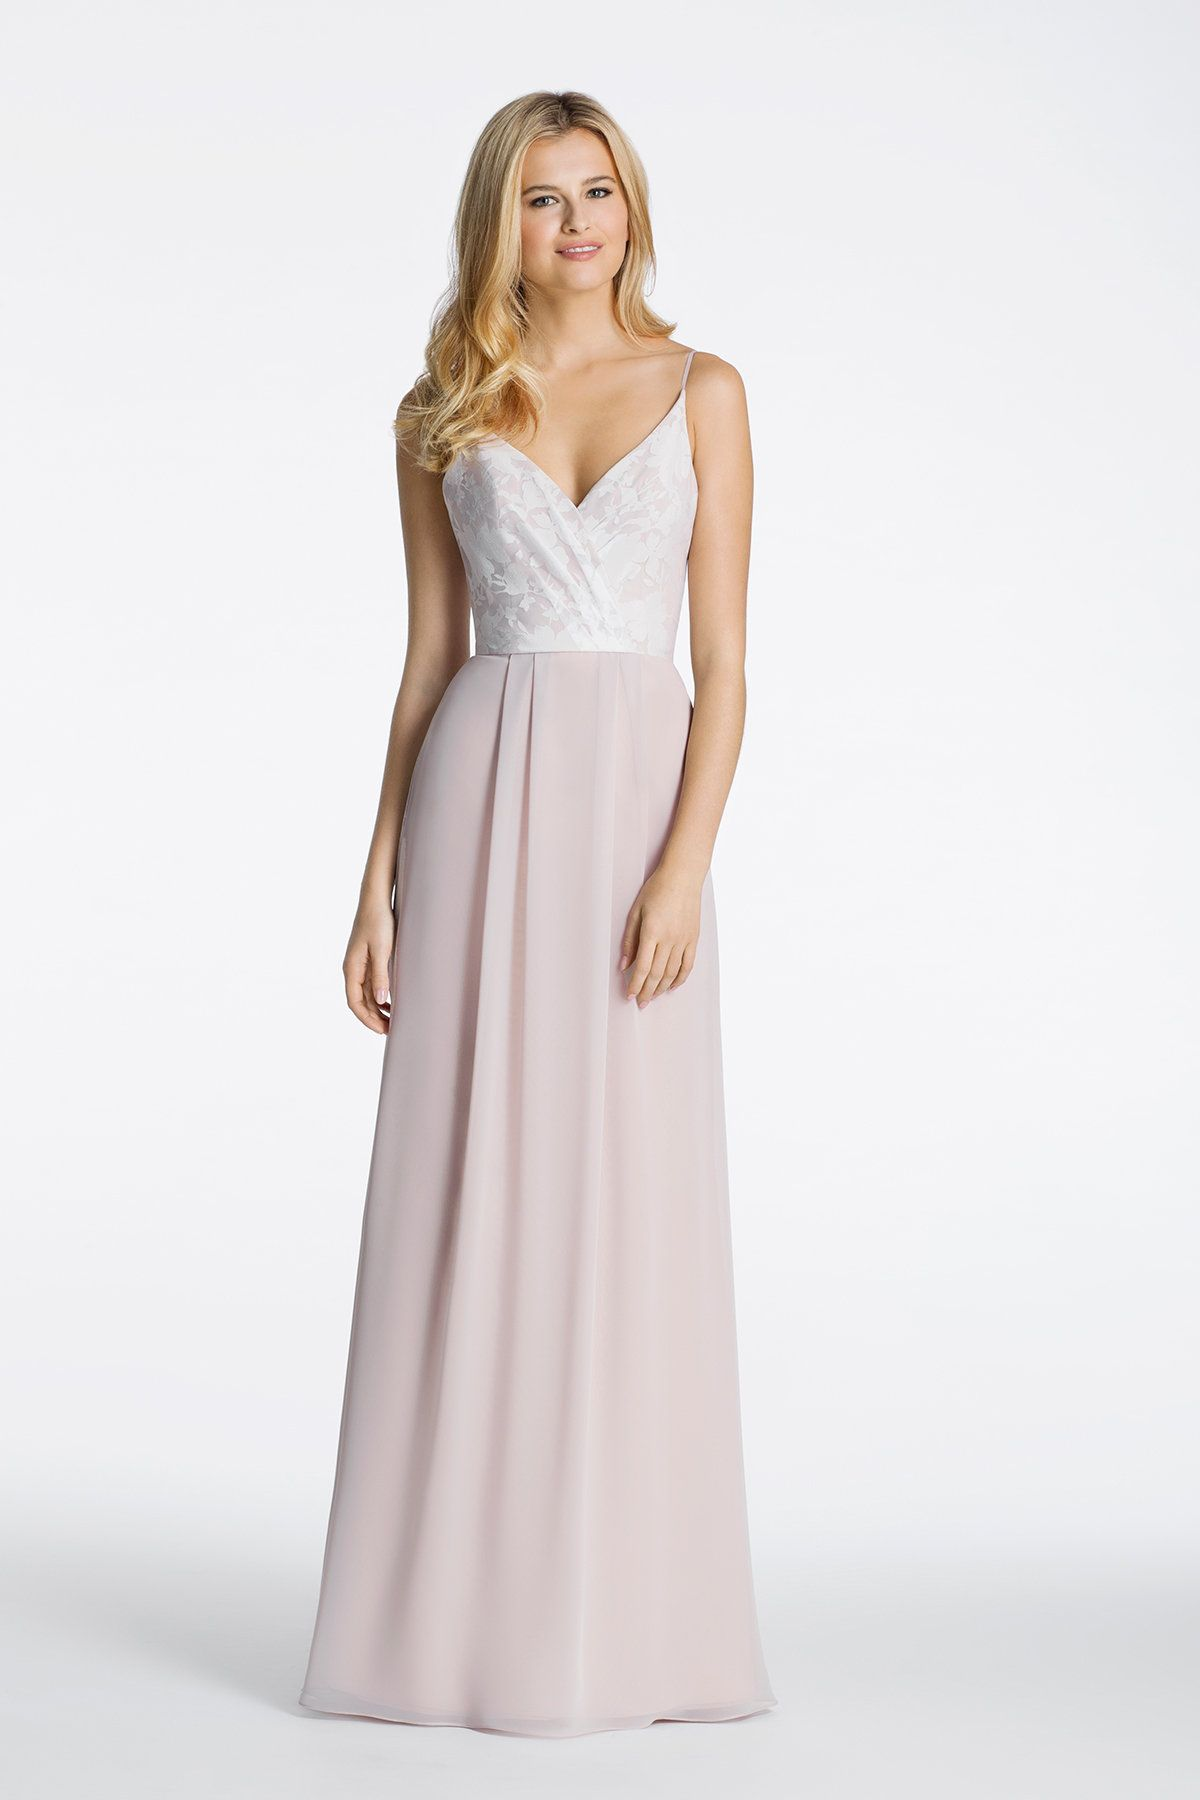 Style 5605 alternate view wedding dresses pinterest hayley hayley paige occasions bridesmaids and special occasion dresses style 5605 by jlm couture inc ombrellifo Gallery